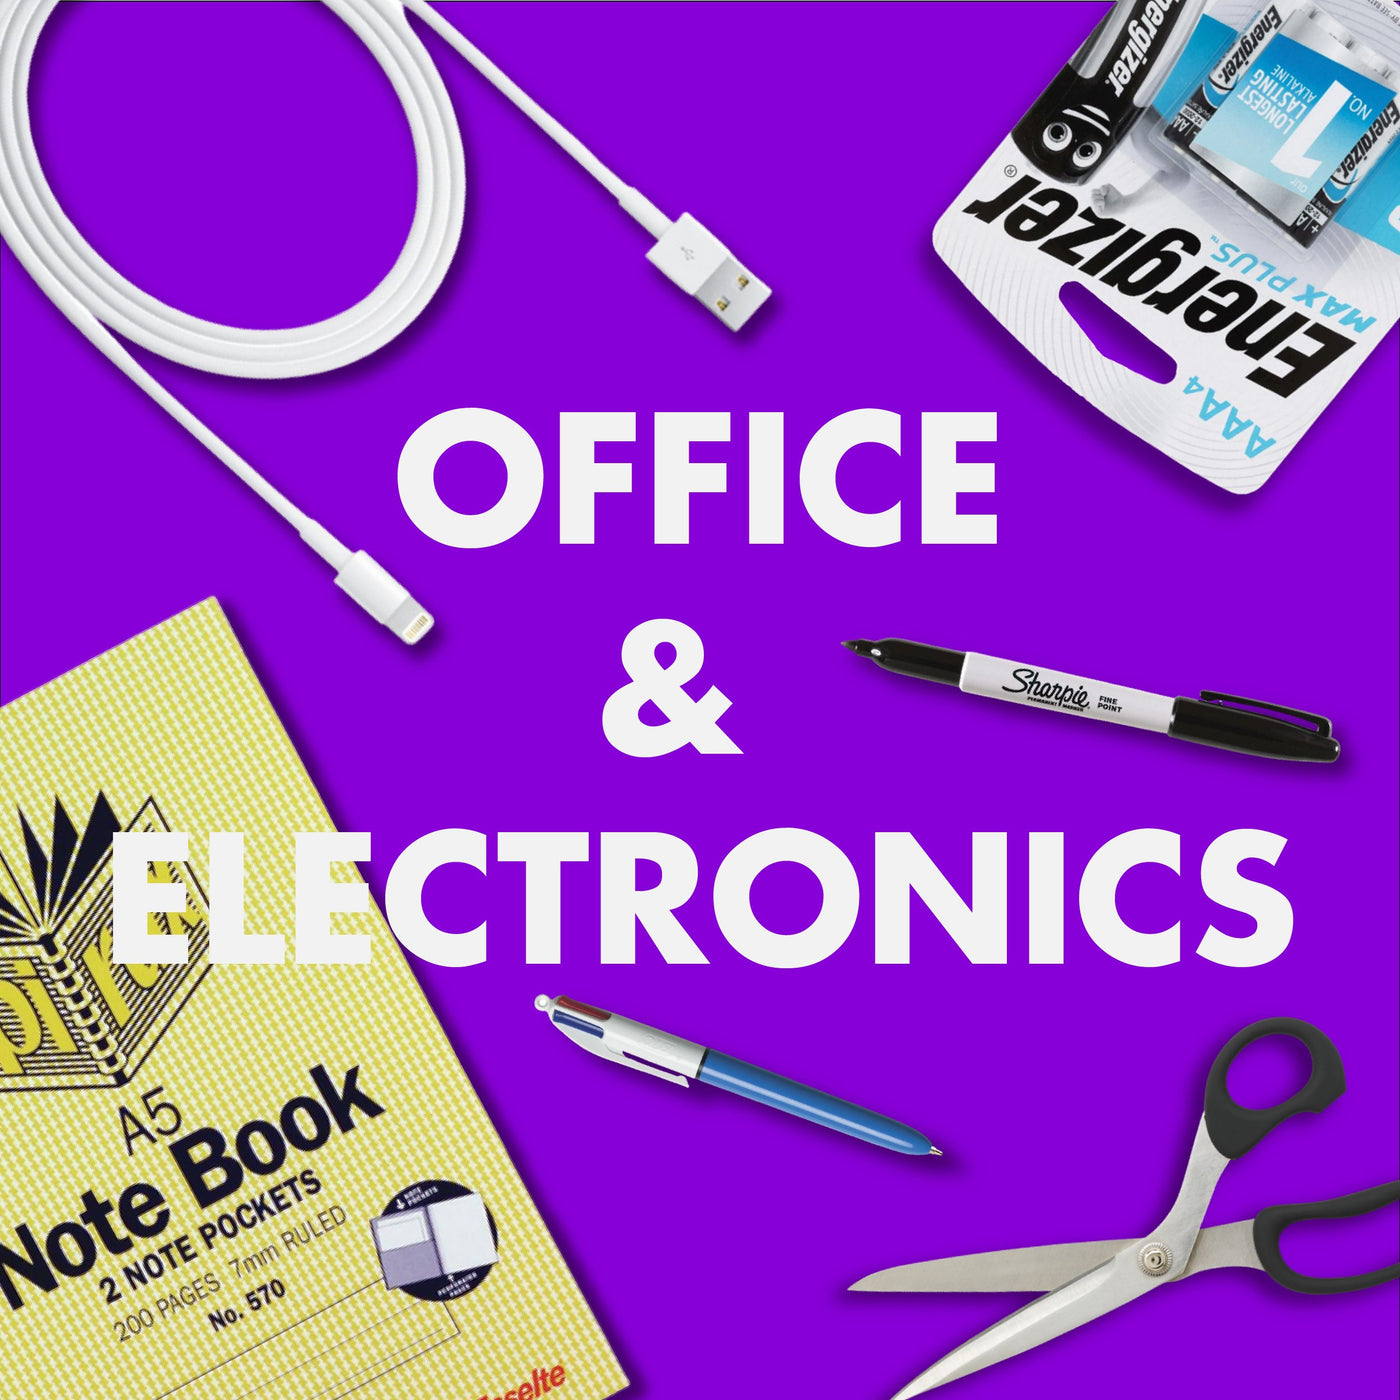 Office & Electronics